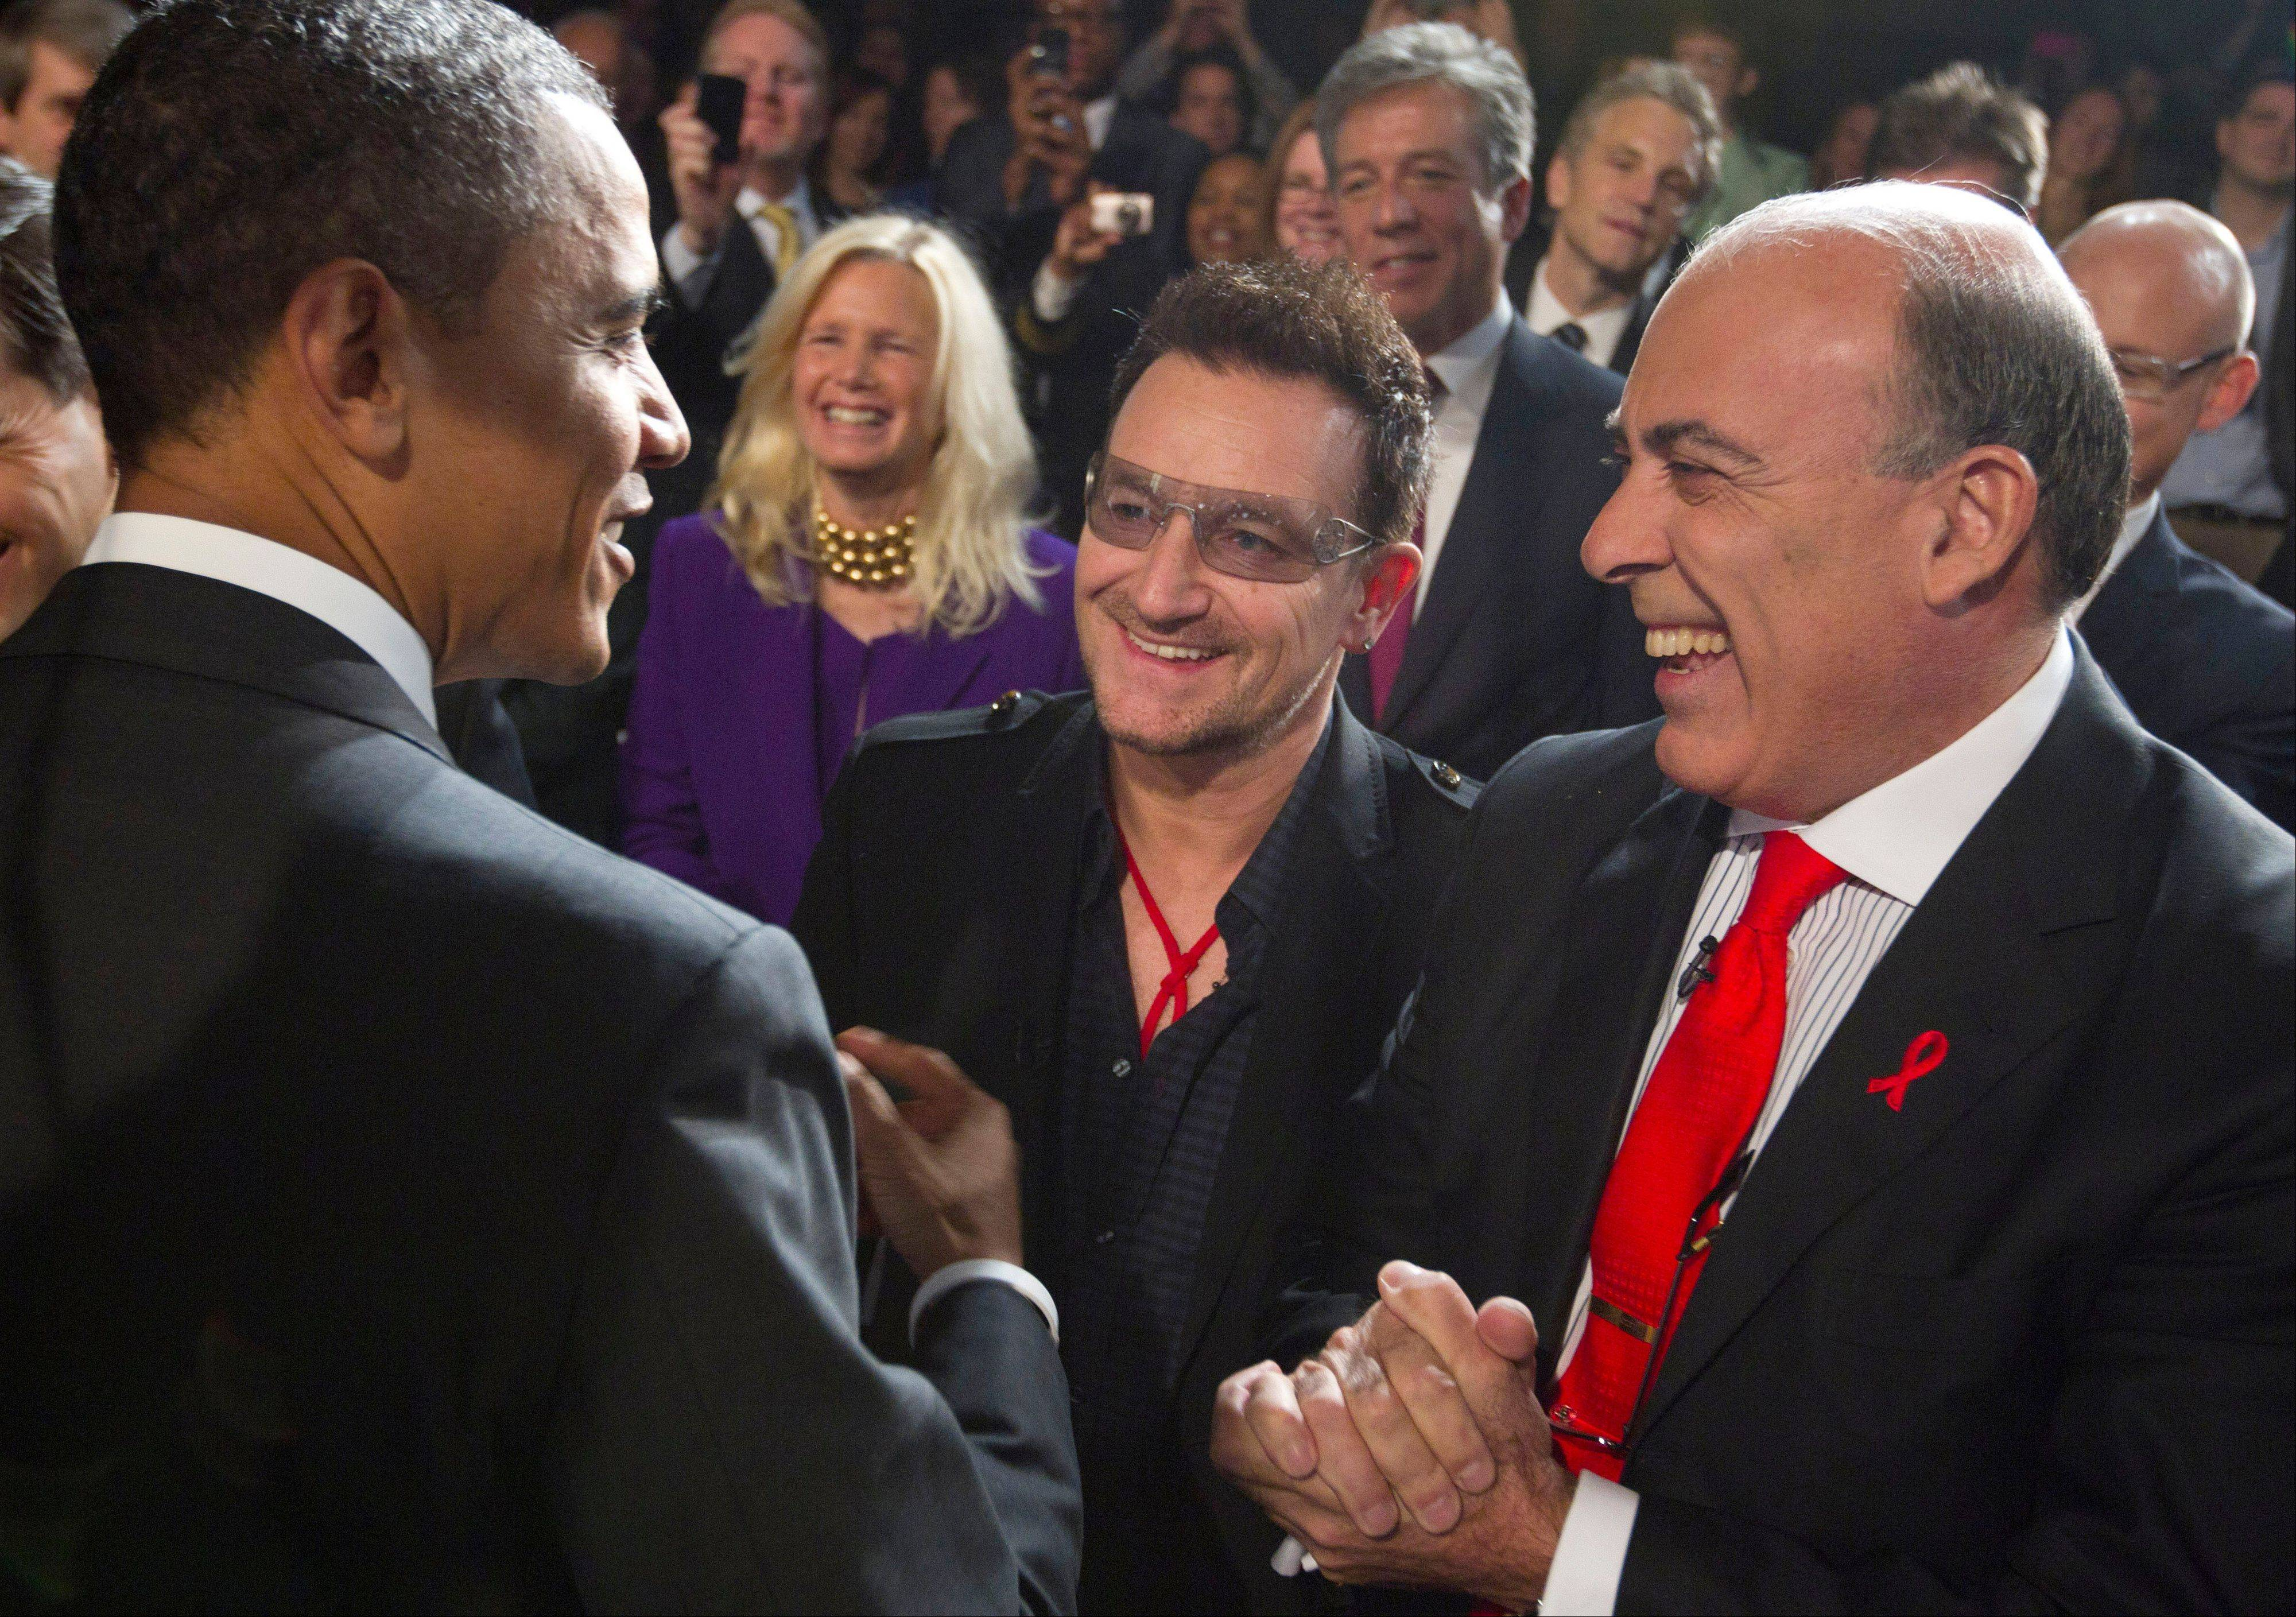 President Barack Obama greets U2 frontman Bono, center, and Muhtar Kent, chairman of the Board and chief executive officer of The Coca-Cola Company, right, after speaking during a World AIDS Day event at George Washington University in Washington, Thursday, Dec. 1, 2011.